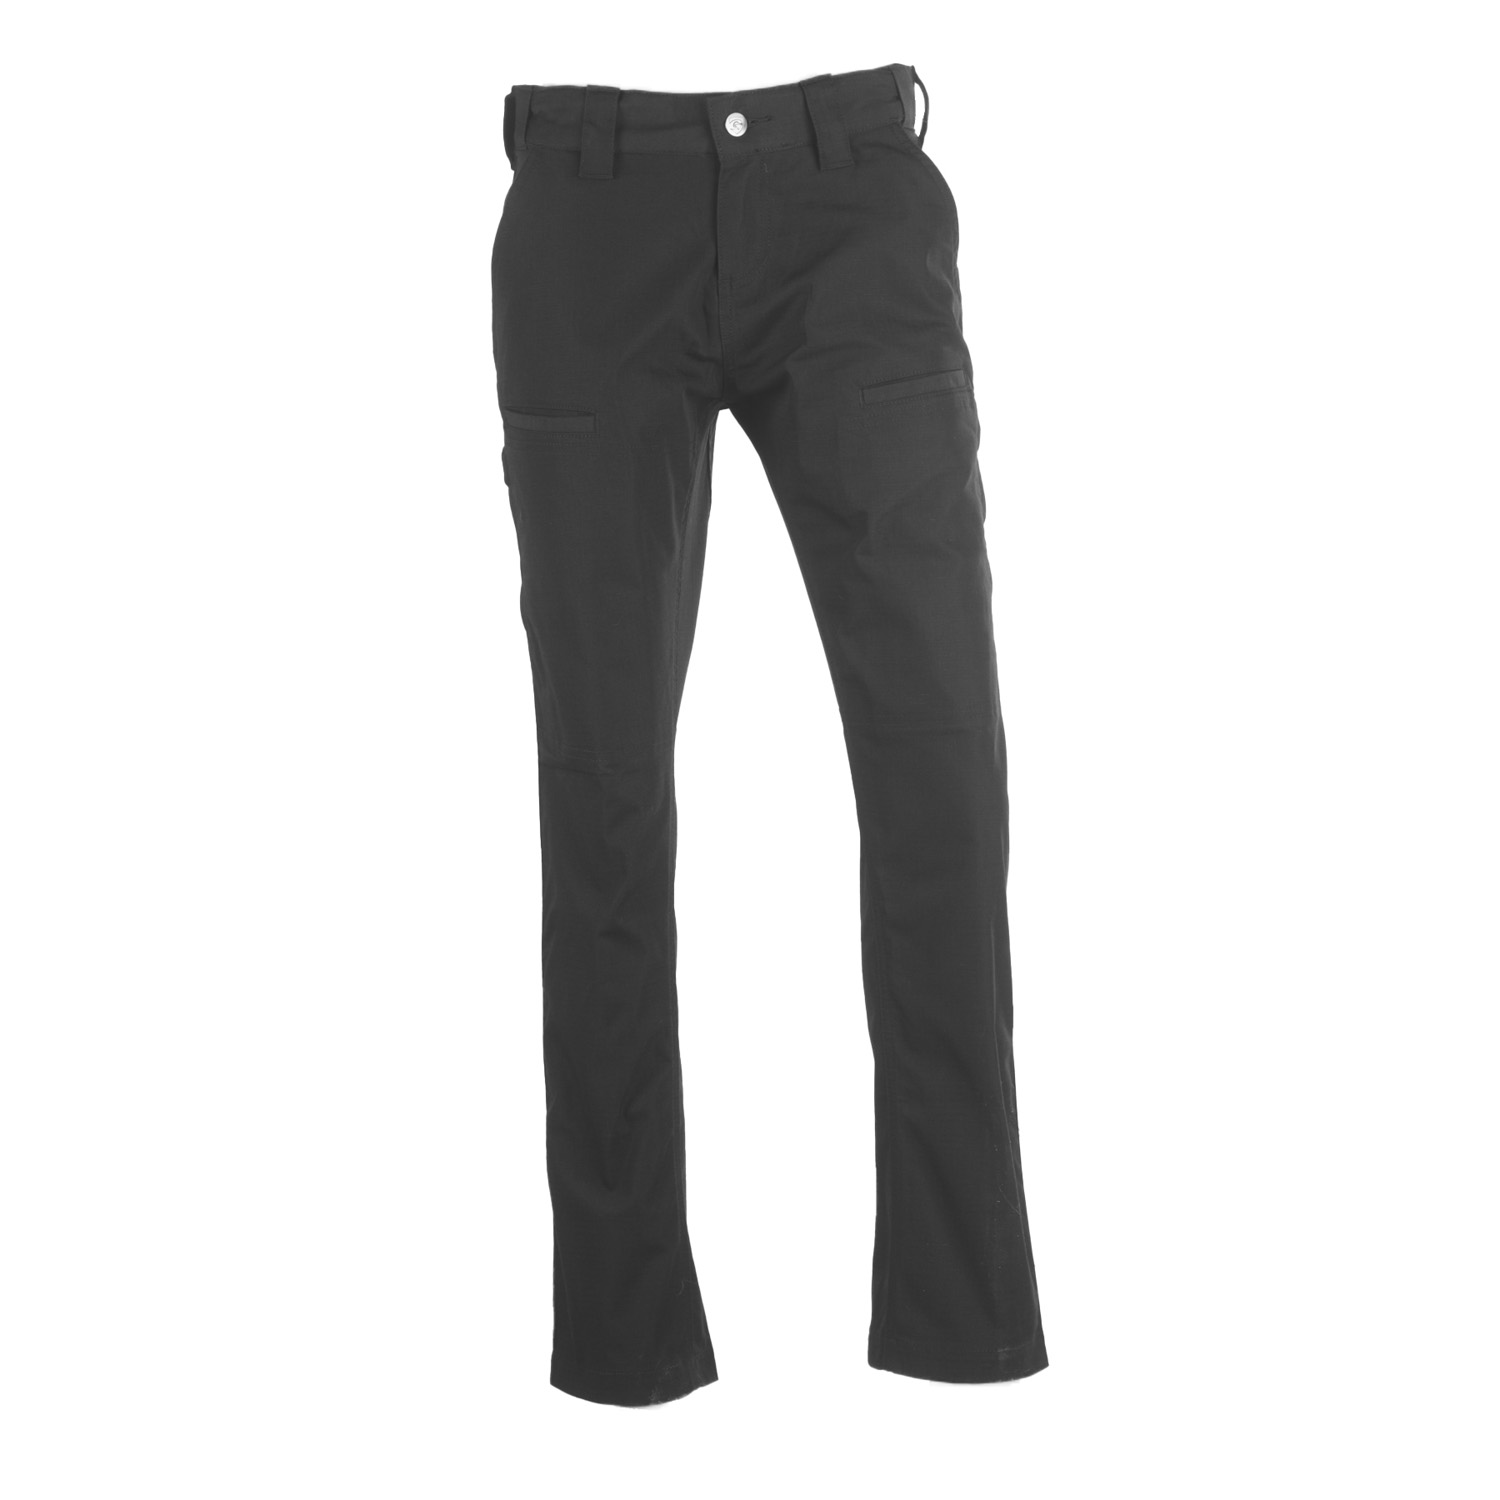 GALLS WOMENS FIELD OPERATIVE PANT